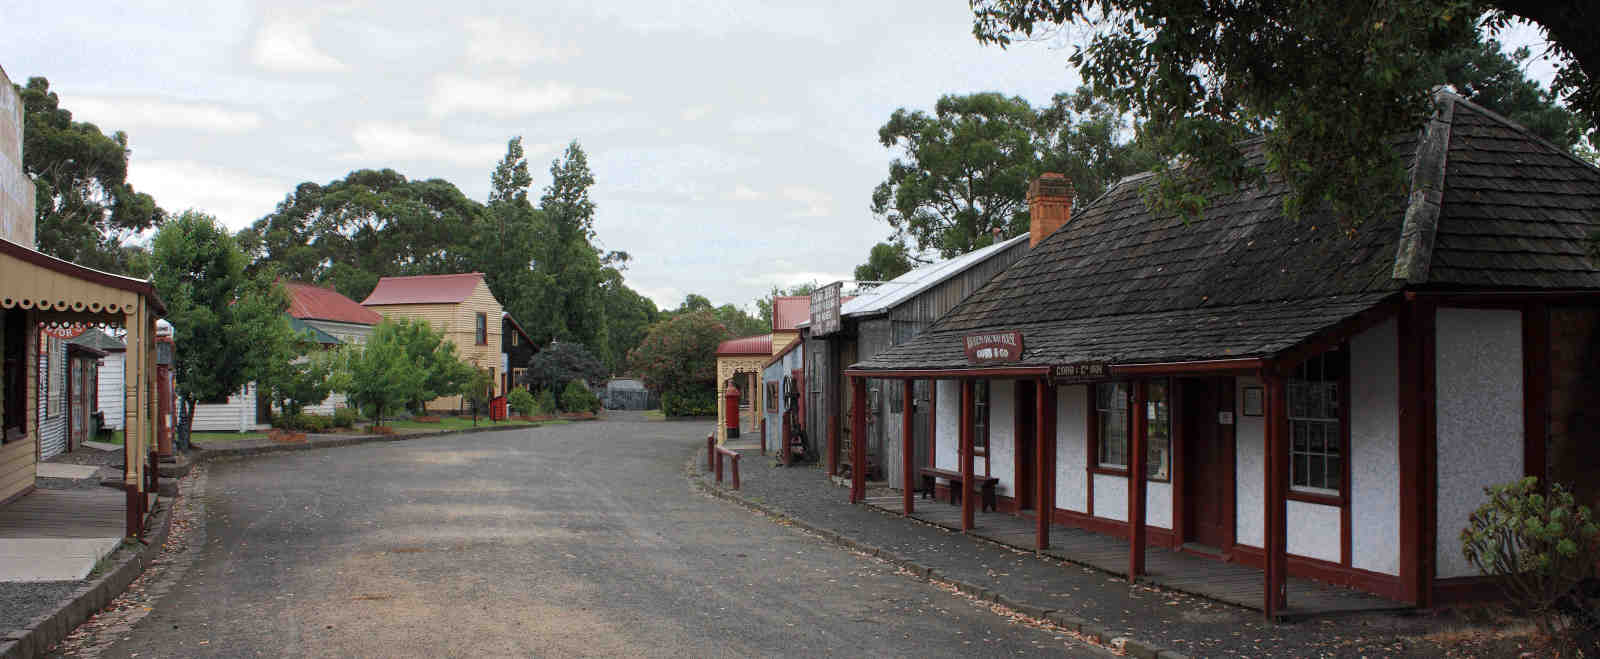 Discover Old Gippstown